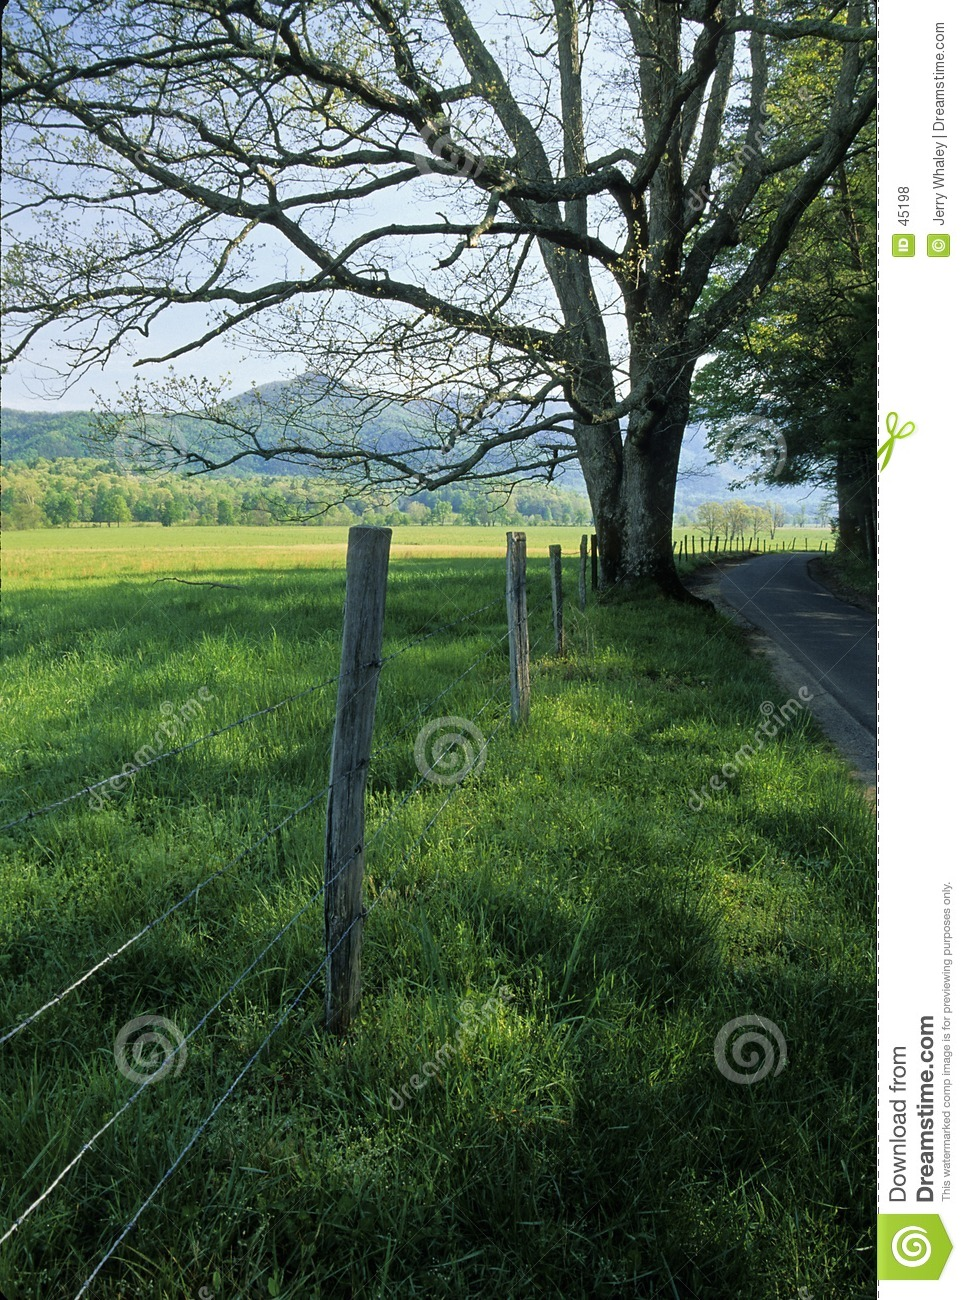 Fence, Tree, Road, Spring